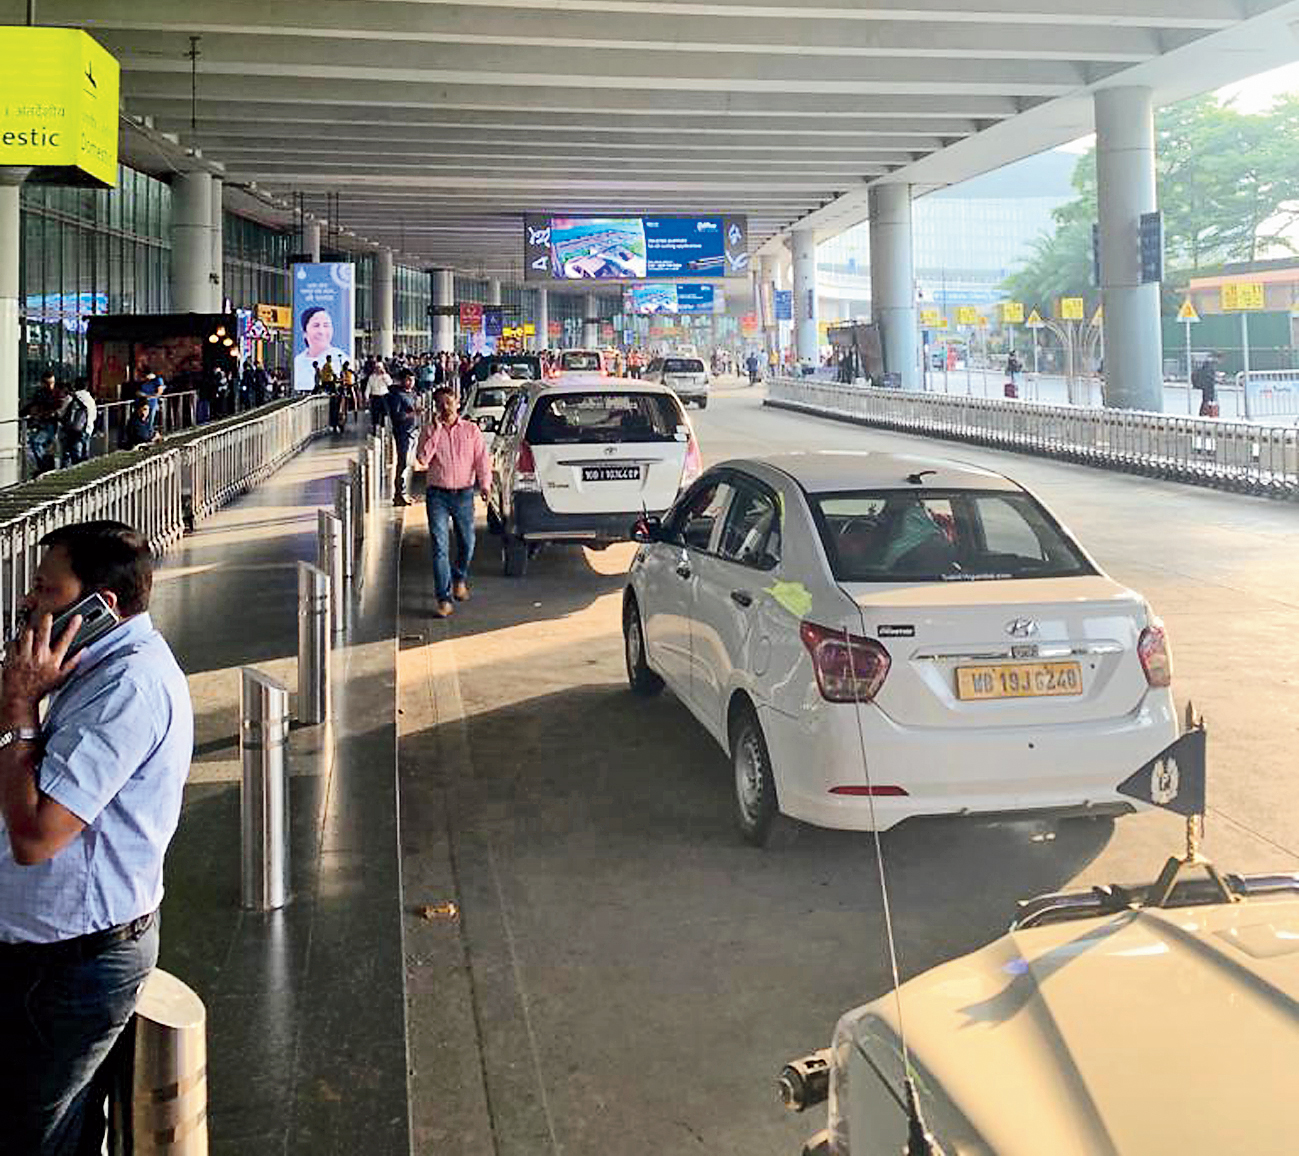 VIP cars block another lane outside the terminal